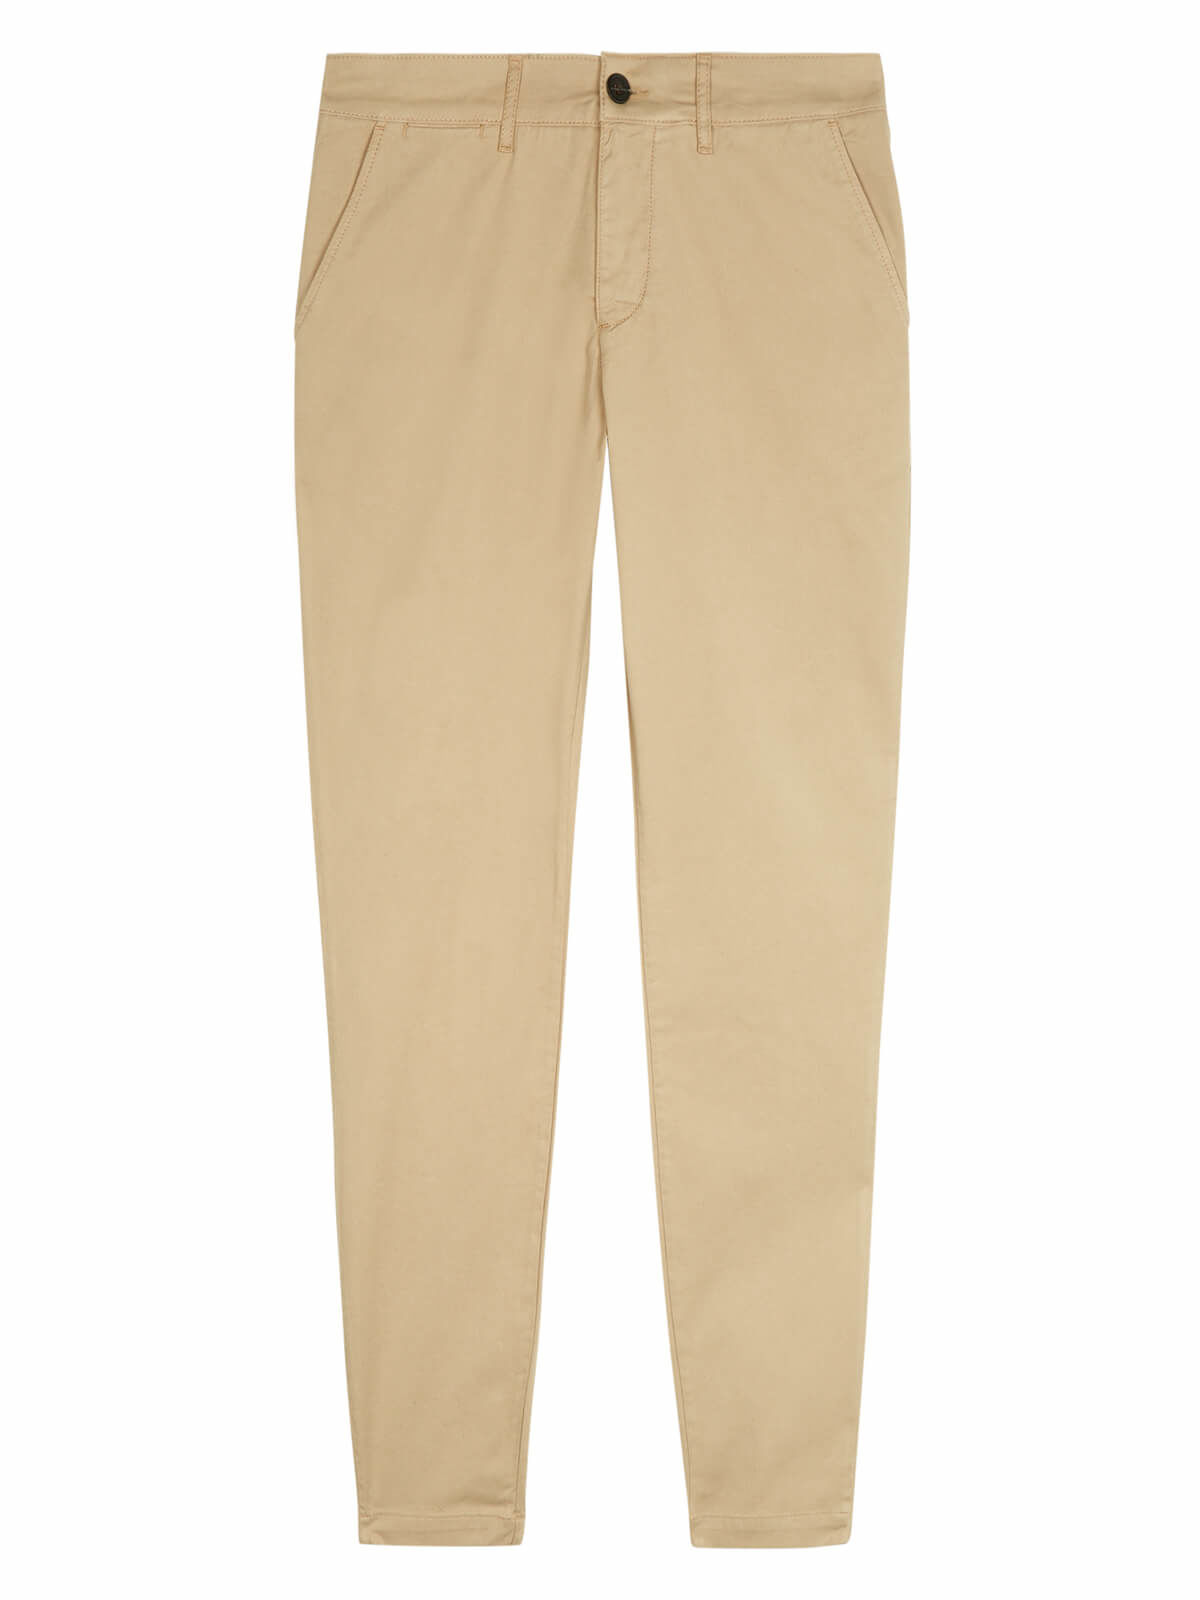 Lyle and Scott Khaki London Stretch Chino